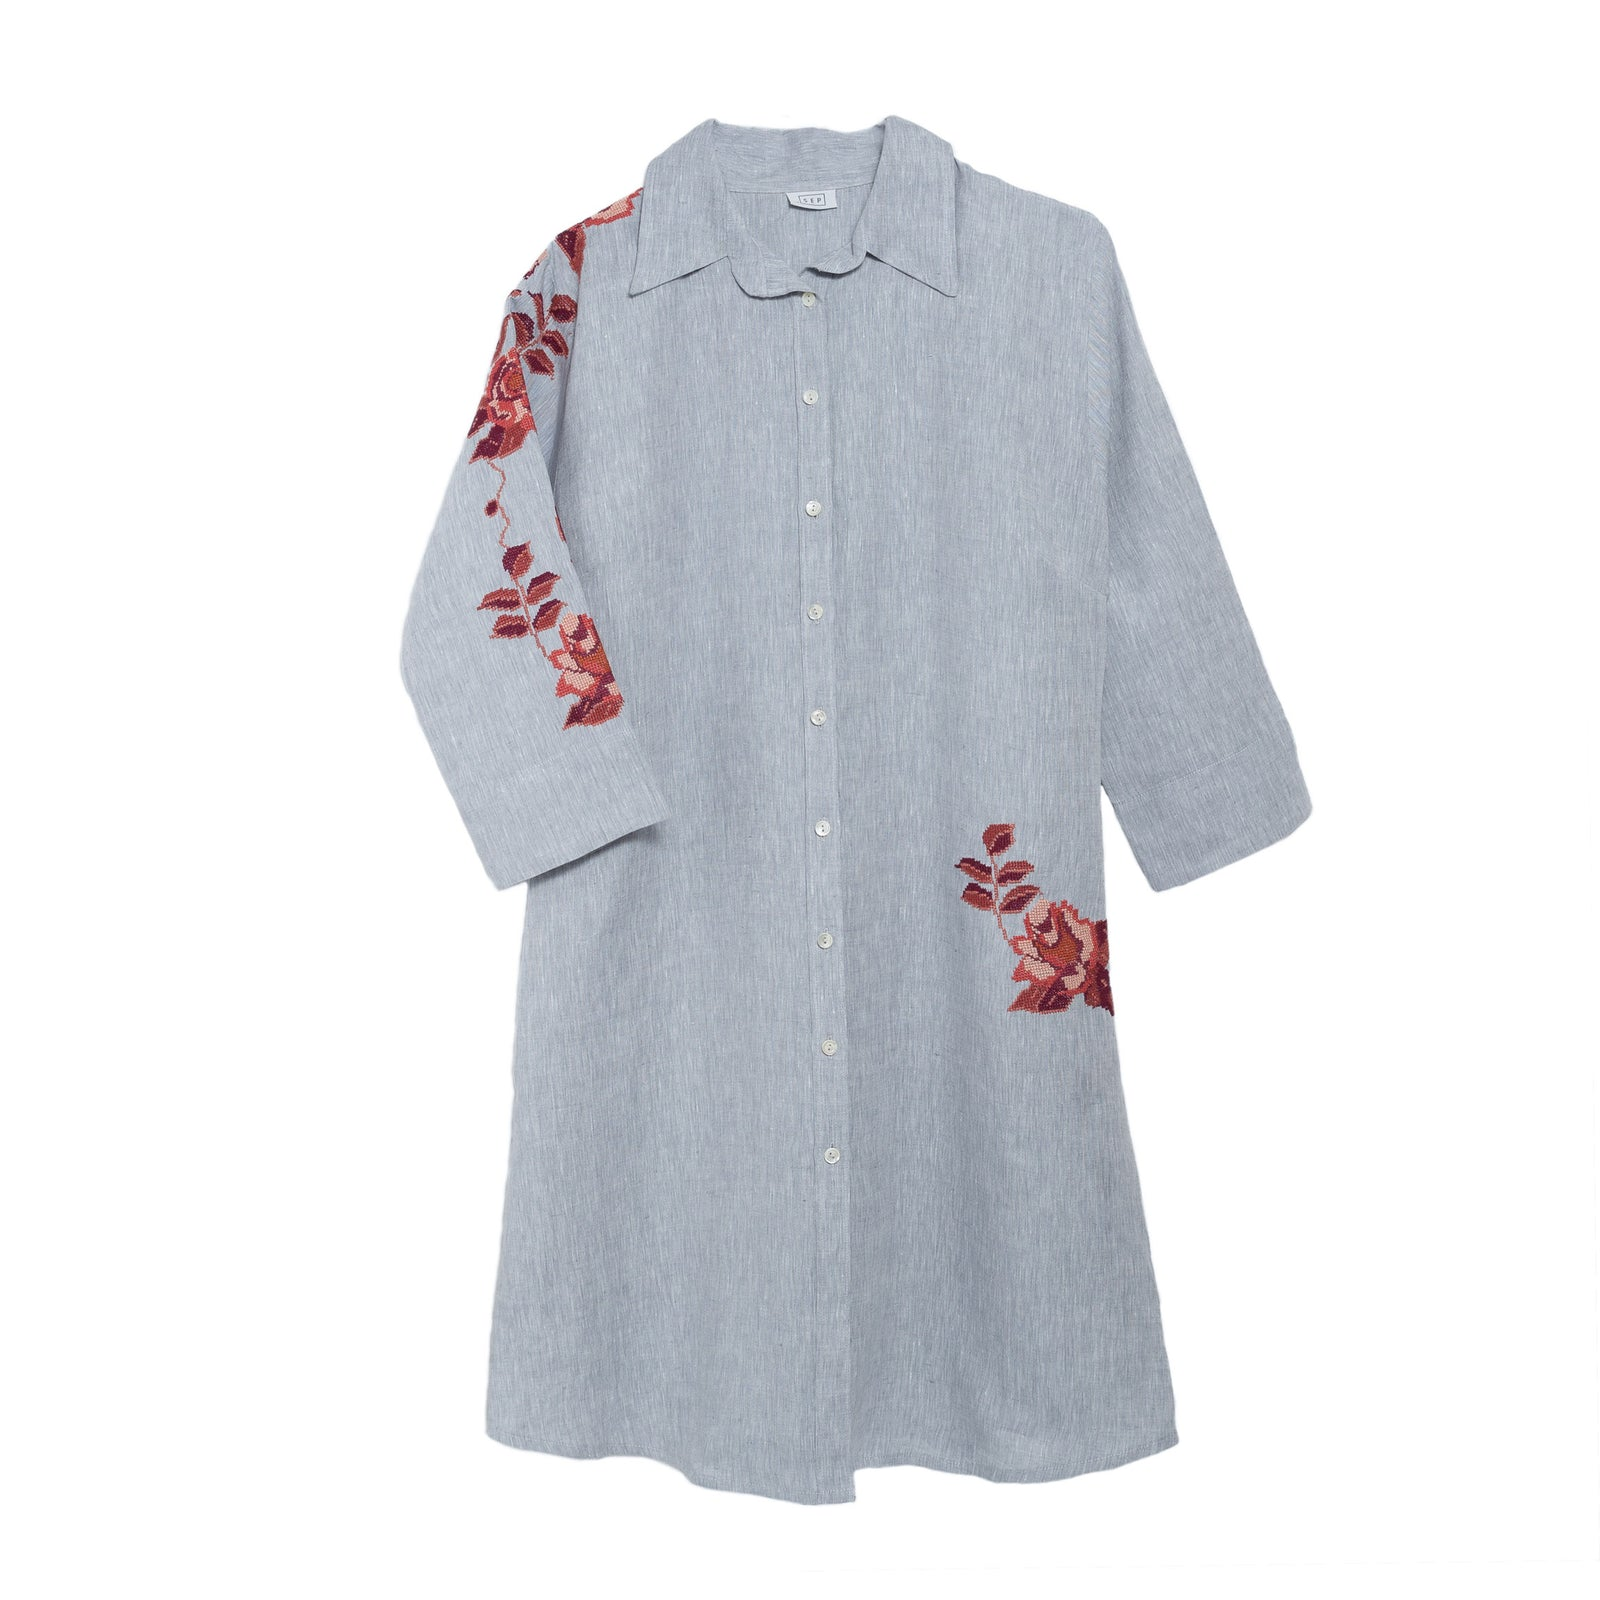 GRAY LINEN SHIRT DRESS BURNT ORANGE HANA ROSE